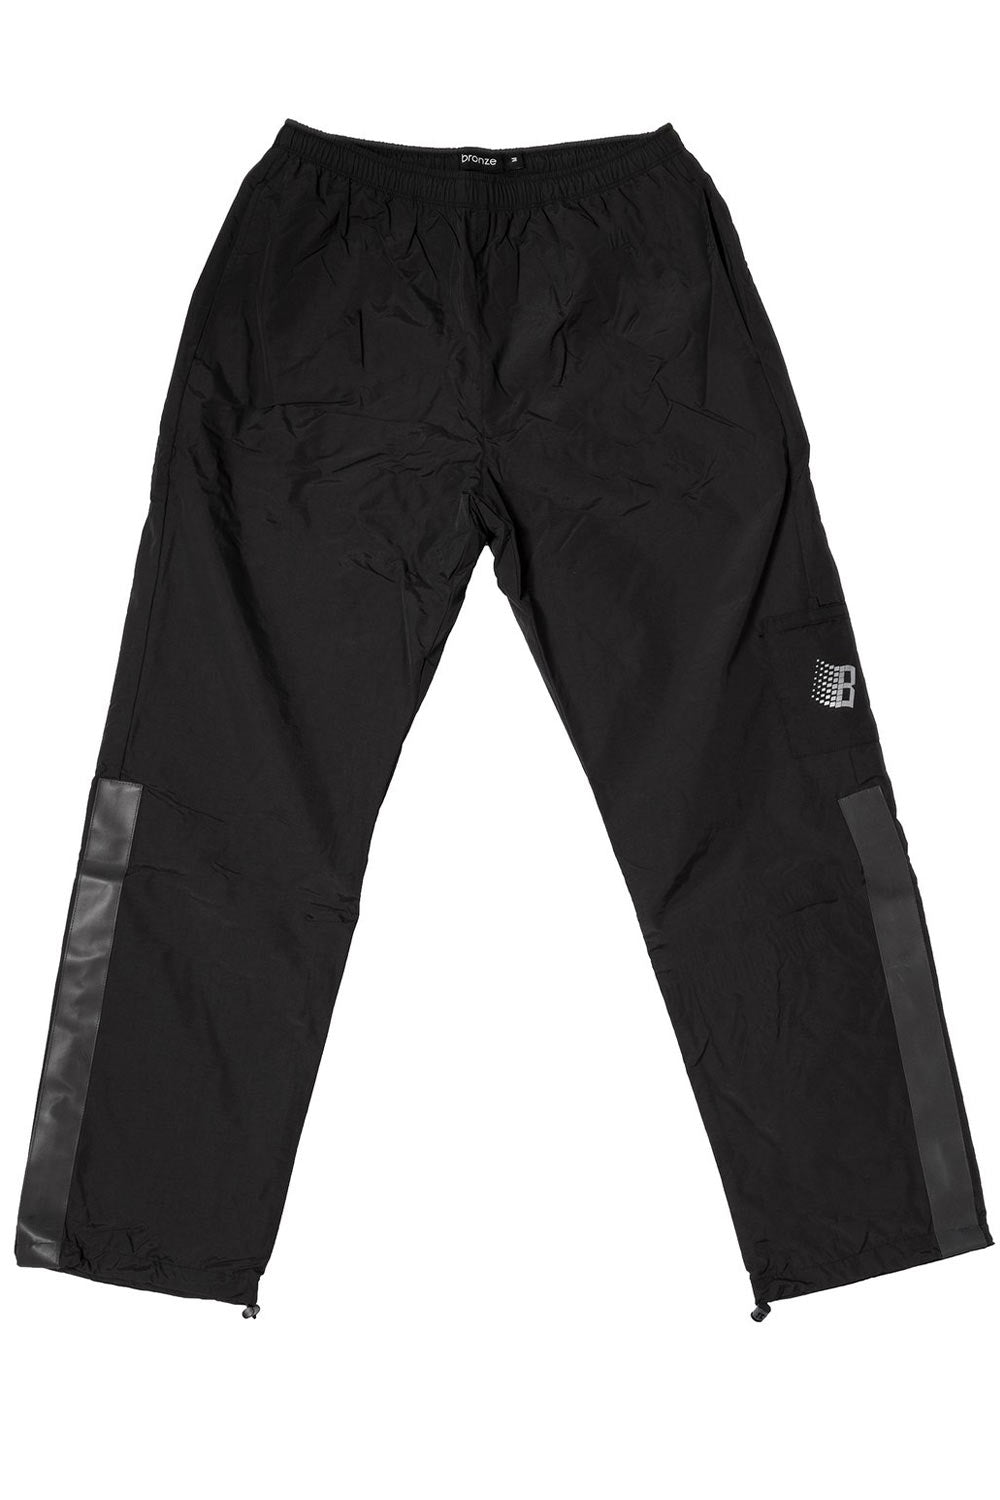 Bronze 56K Track Pants - Black